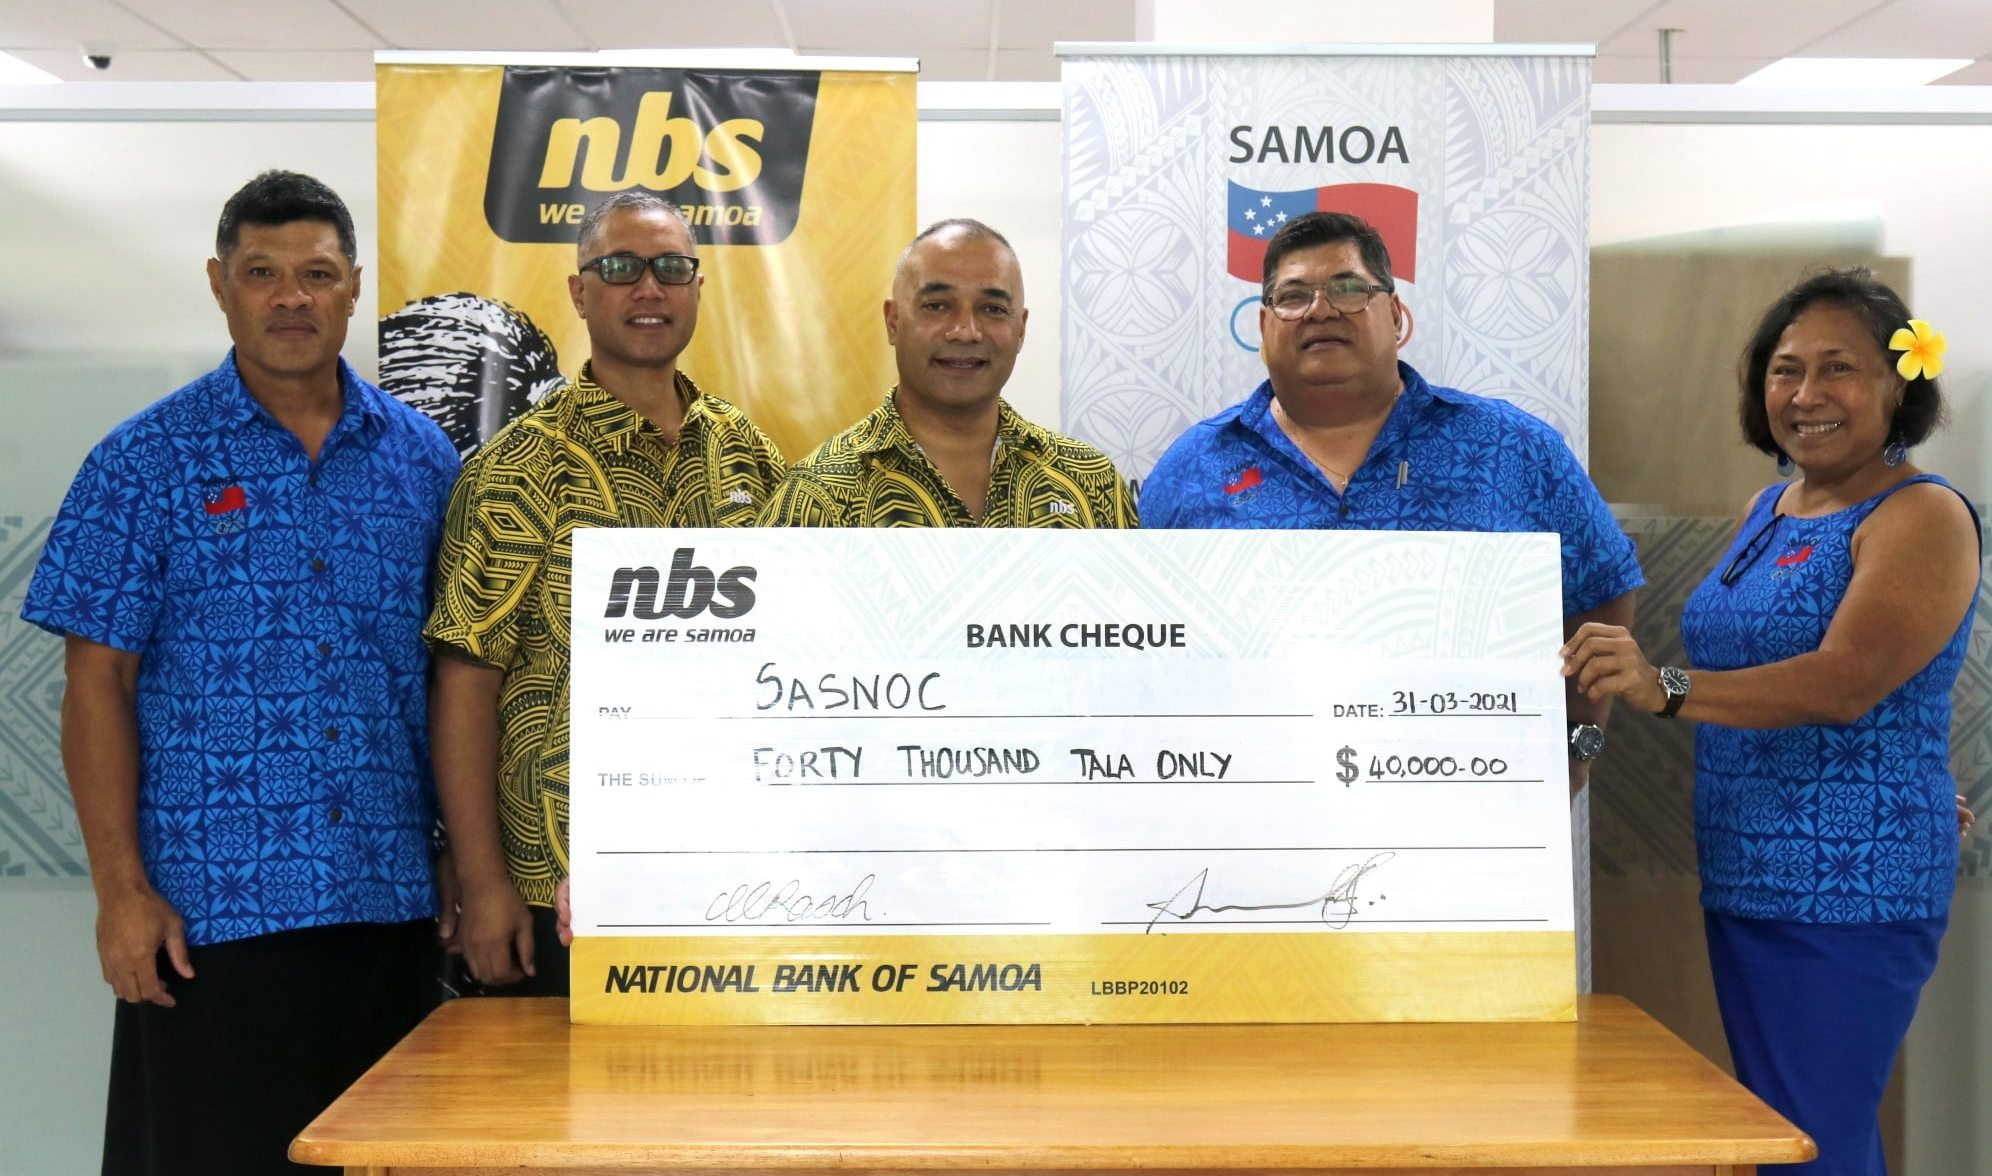 National Bank of Samoa gives SASNOC funding to aid athletes' Games preparations